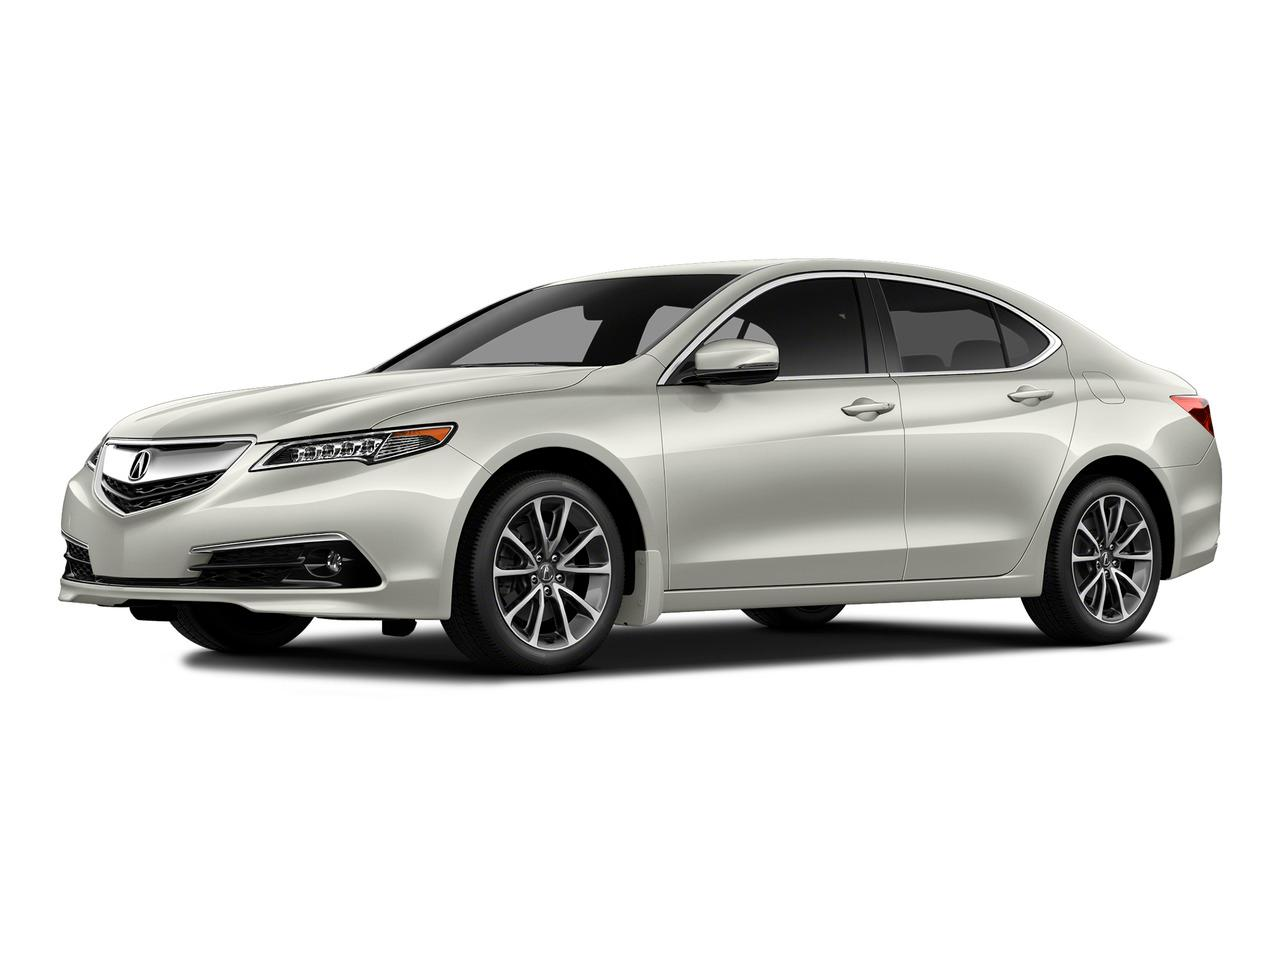 2015 Acura TLX Vehicle Photo in Watertown, CT 06795